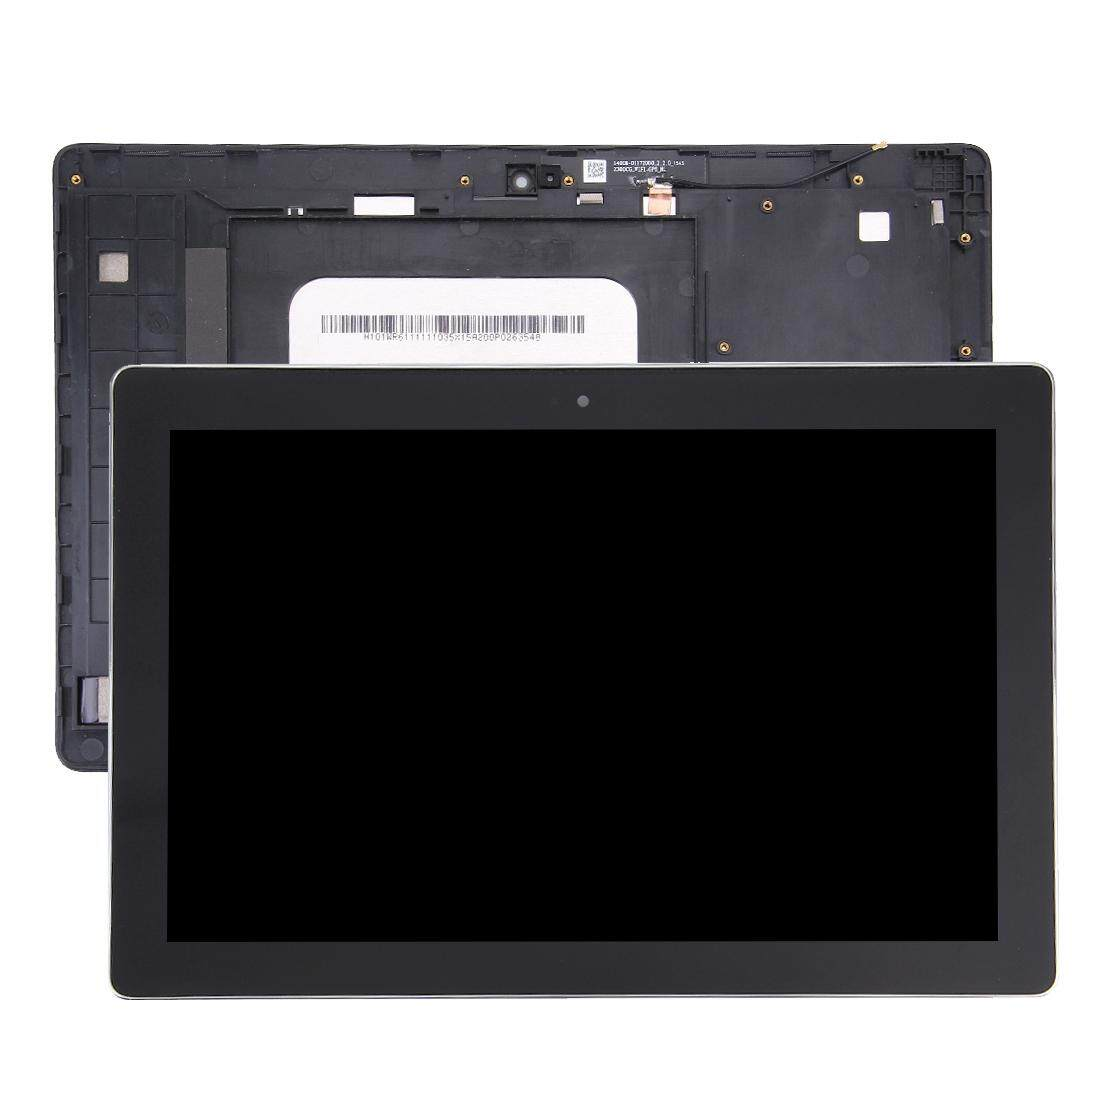 P023 Z300CNL Mobile Phone LCD Screen Replacement LCD Screen and Digitizer Full Assembly with Frame for Asus ZenPad 10 Z300C P01T Green Flex Cable Version Z300CL Black Z300CG